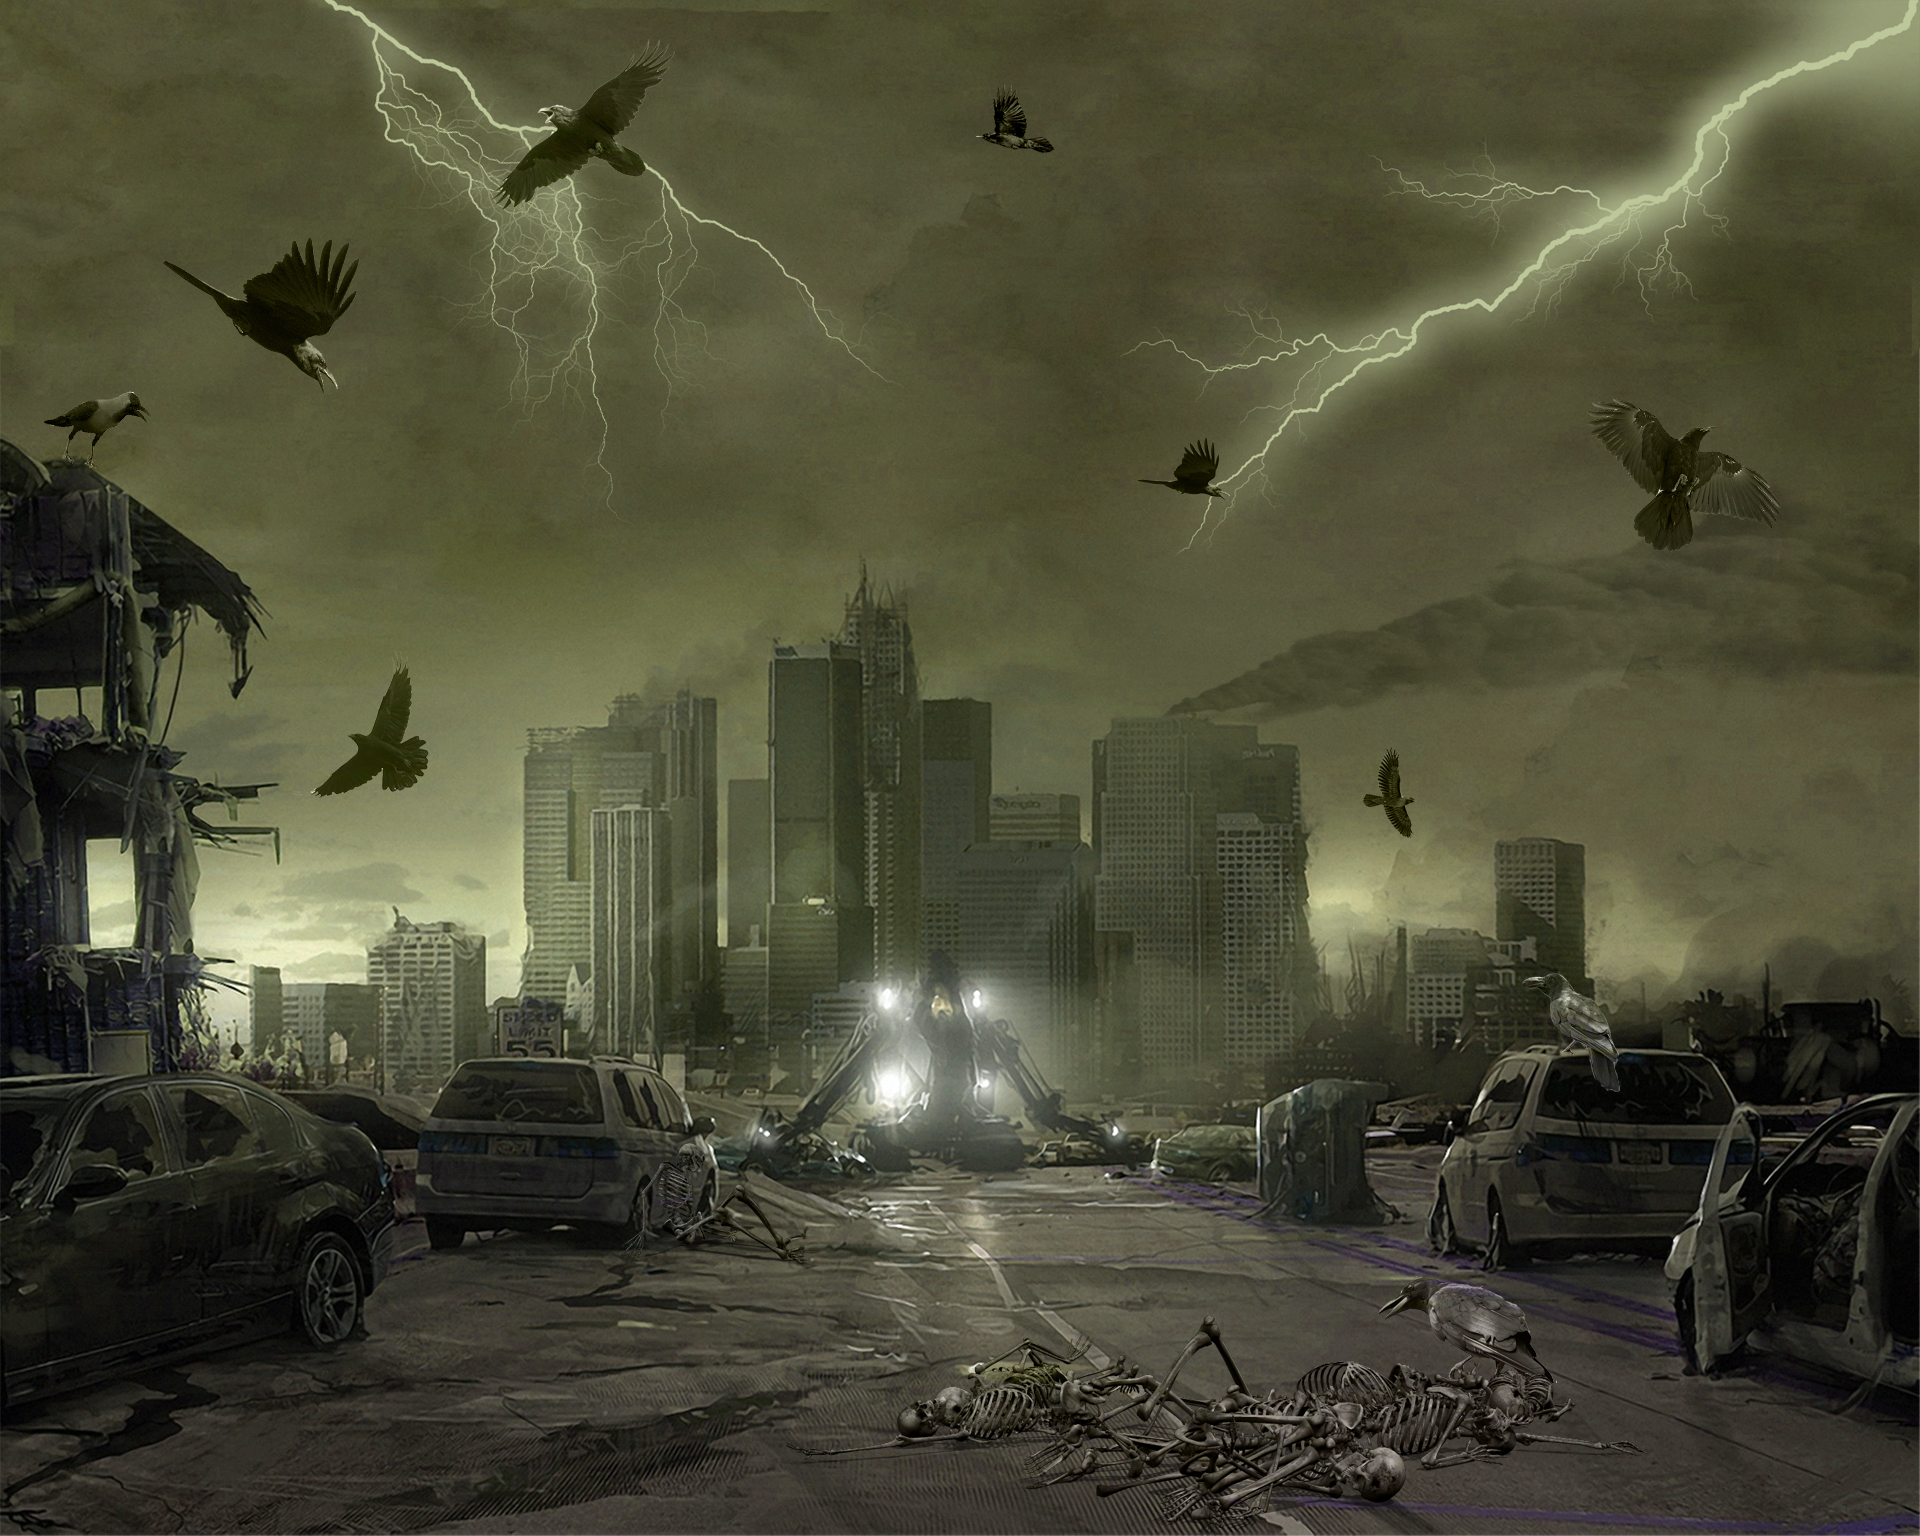 Apocalypse_by_shady06.jpg